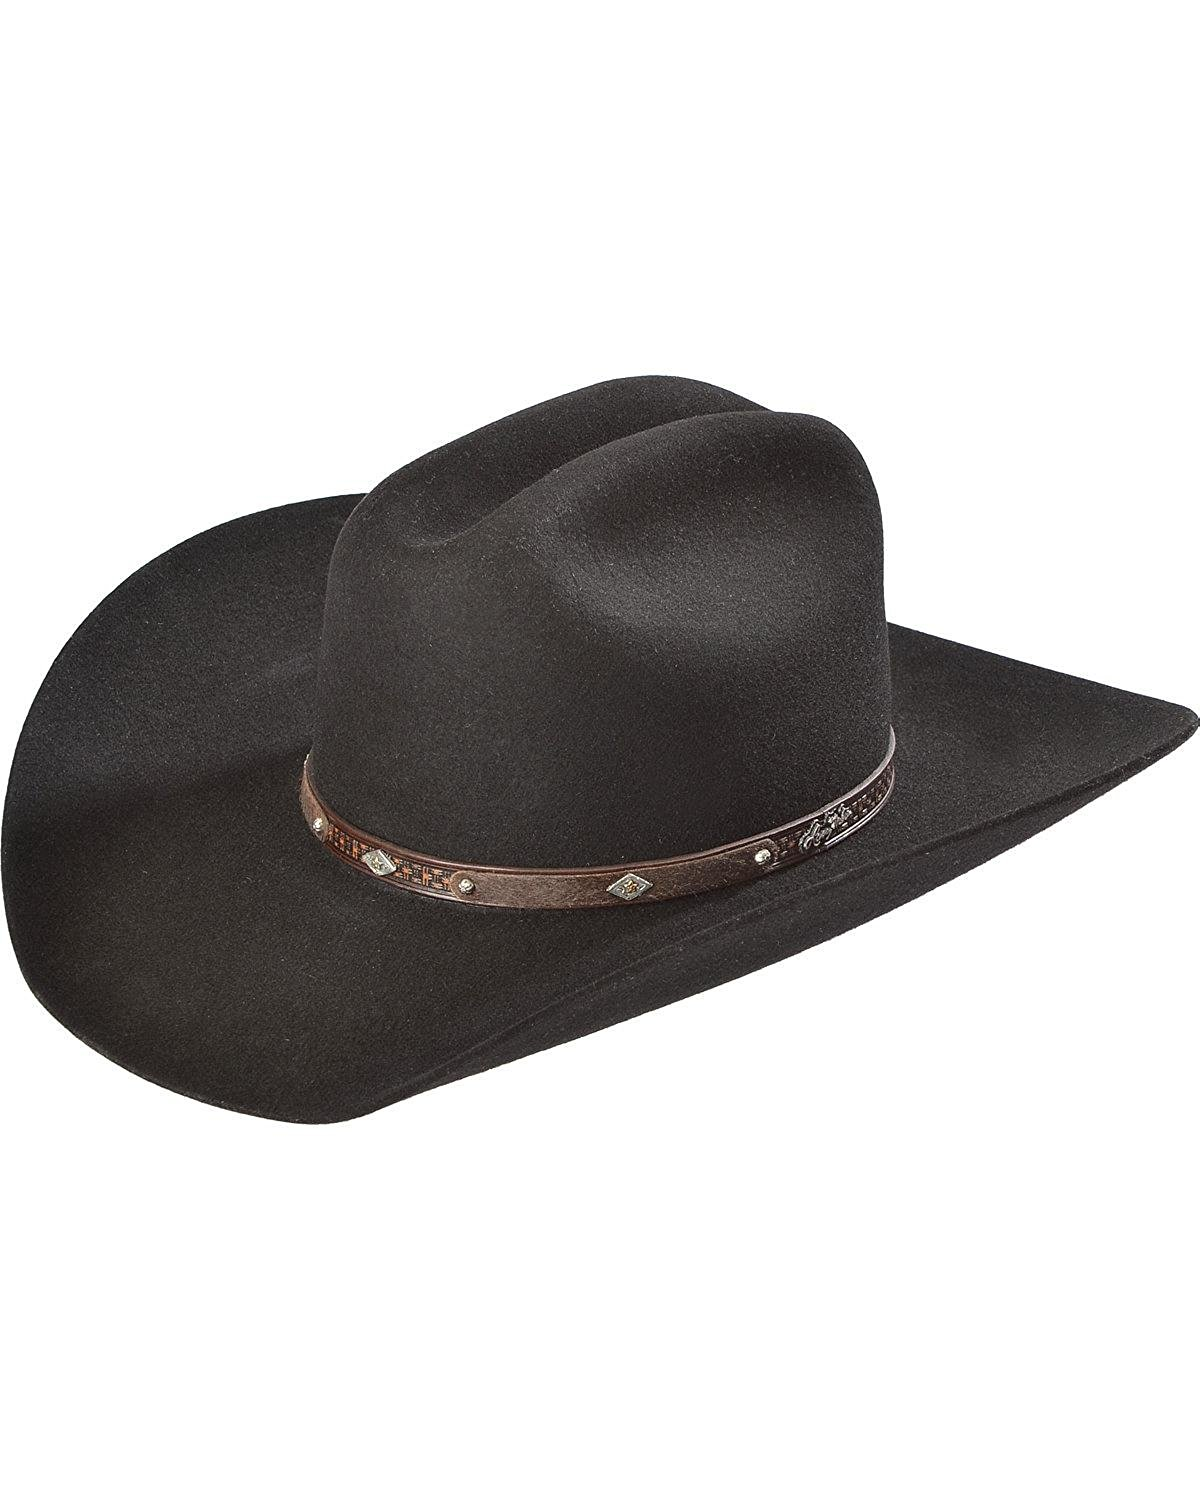 a067f45e1c728 Buy Larry Mahan Mens 30X Pancho Hat in Cheap Price on Alibaba.com